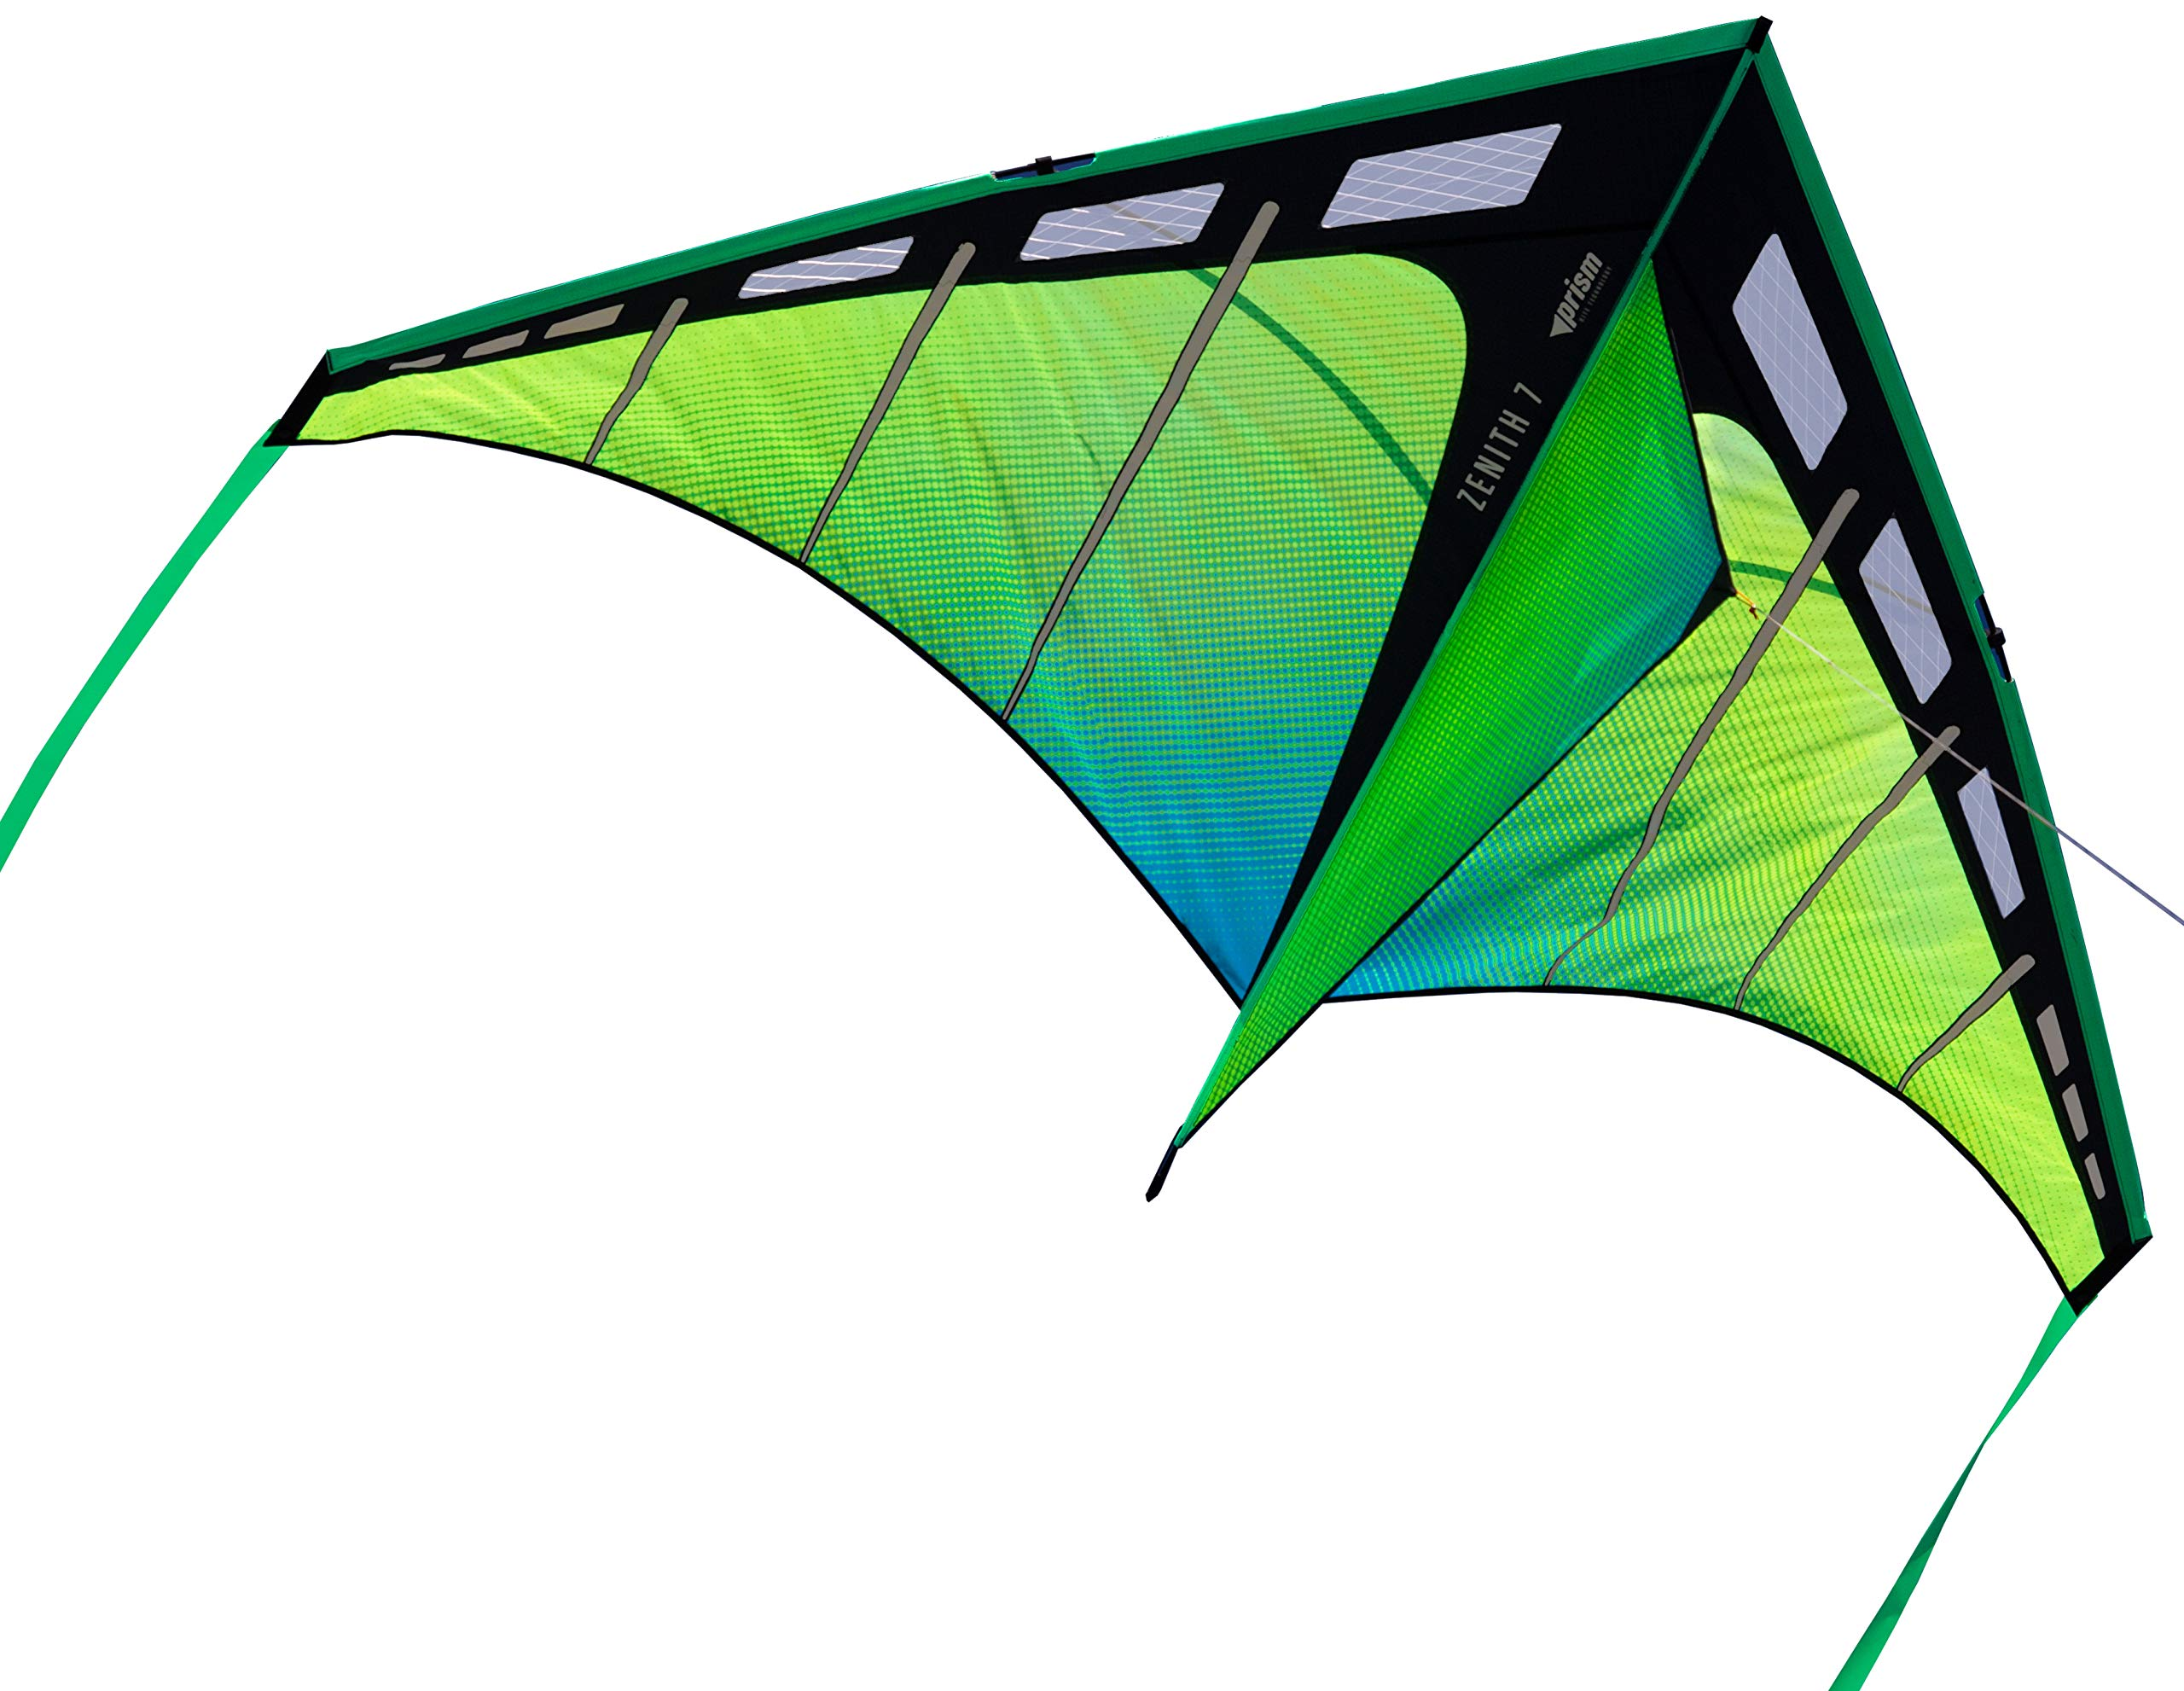 Prism Kite Technology Zenith 7 Aurora Single Line Kite, Ready to Fly with line, Winder and Travel Sleeve by Prism Kite Technology